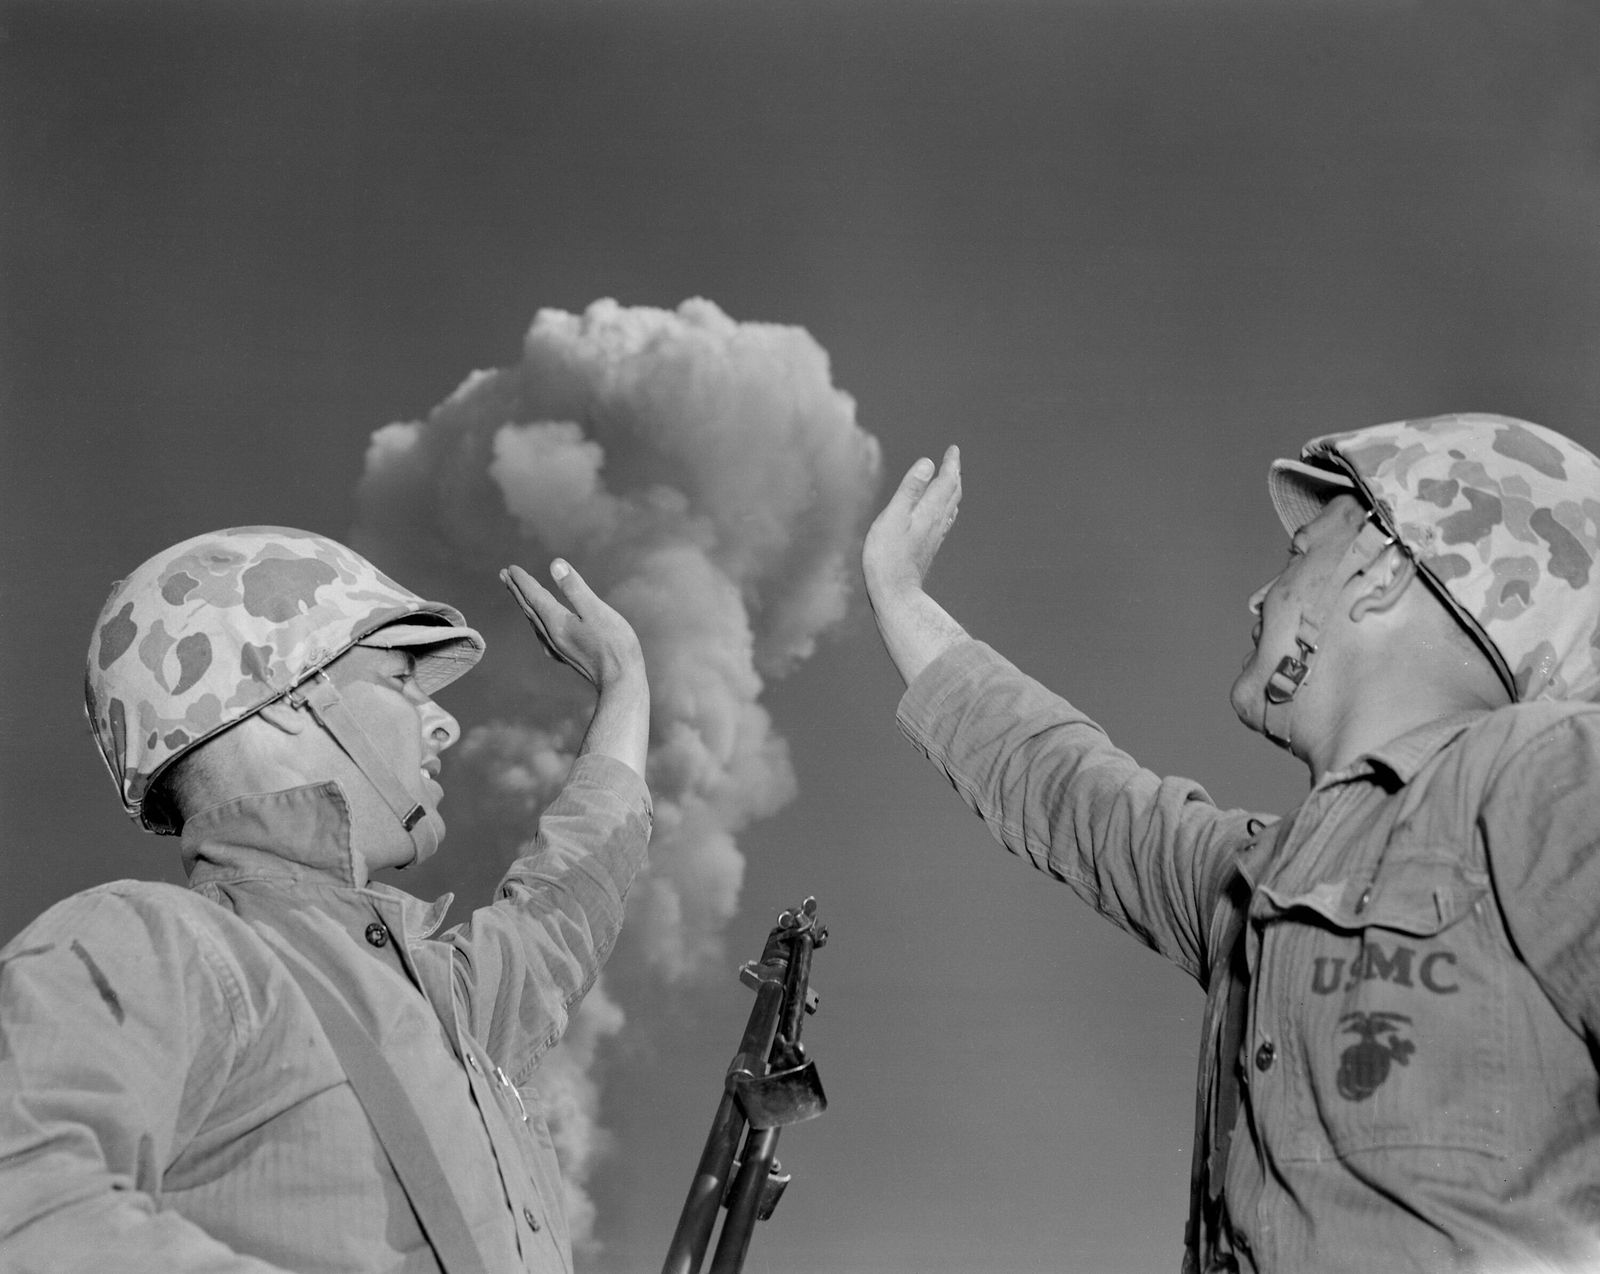 Soldiers pose below an atomic cloud at the Nevada Proving Ground. Soldiers conducted maneuvers in the vicinity of nucle